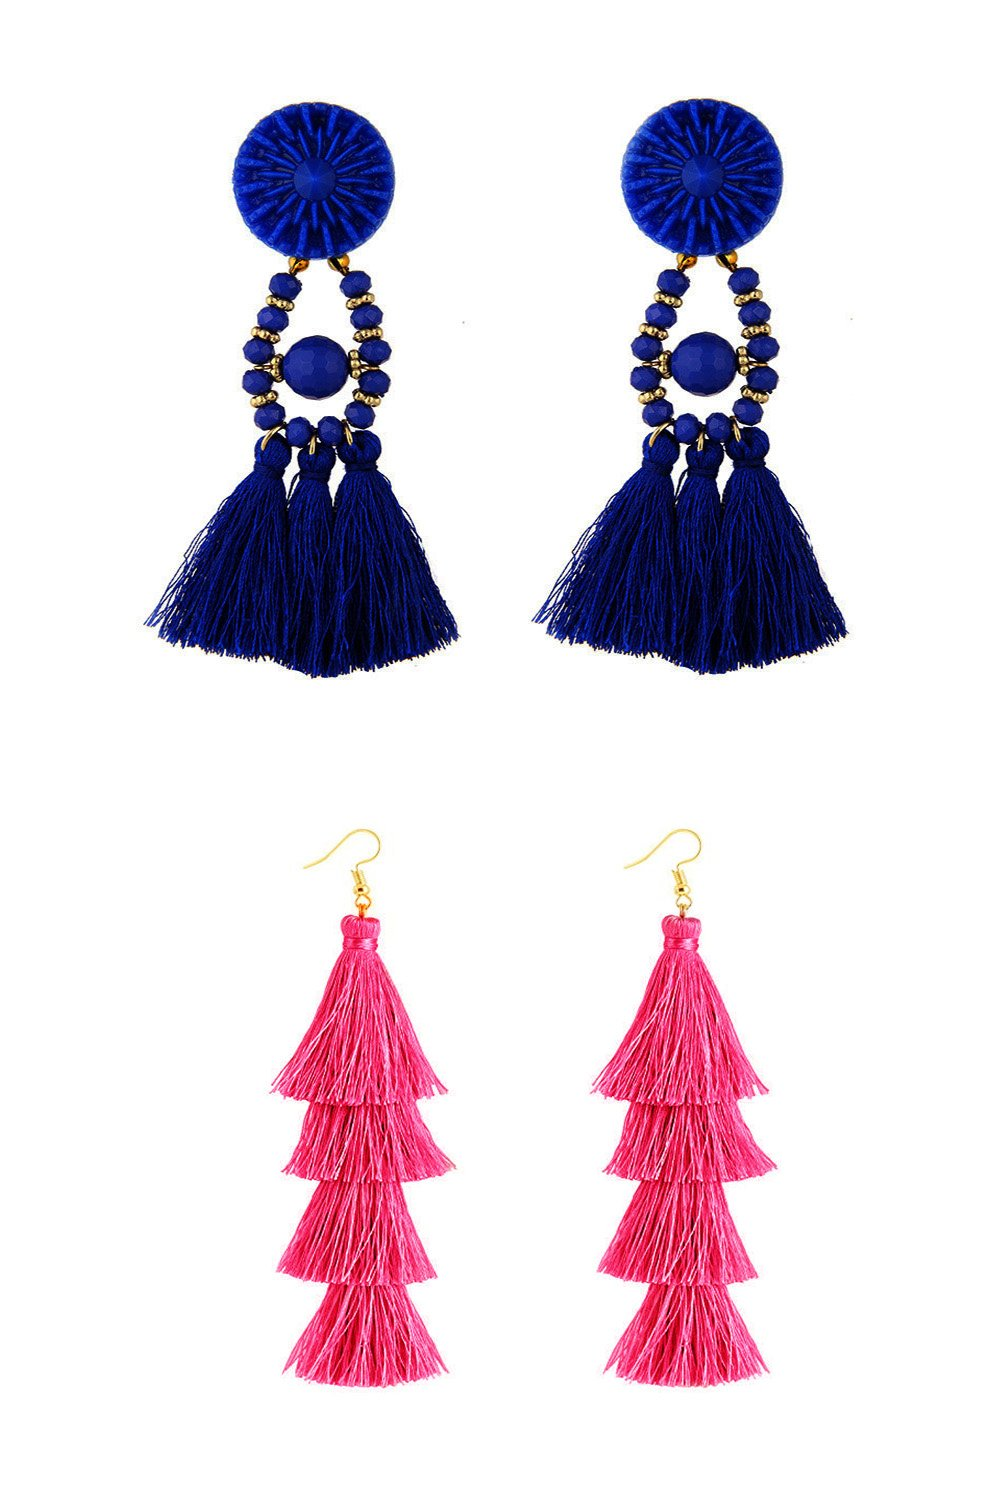 Q&S Jewels Fashion Handmade Bohemian Statement Chandelier Blue Tassel Stud Earrings and Royal Blue Tiered Thread Tassel Drop Dangle Earring 2 Pairs